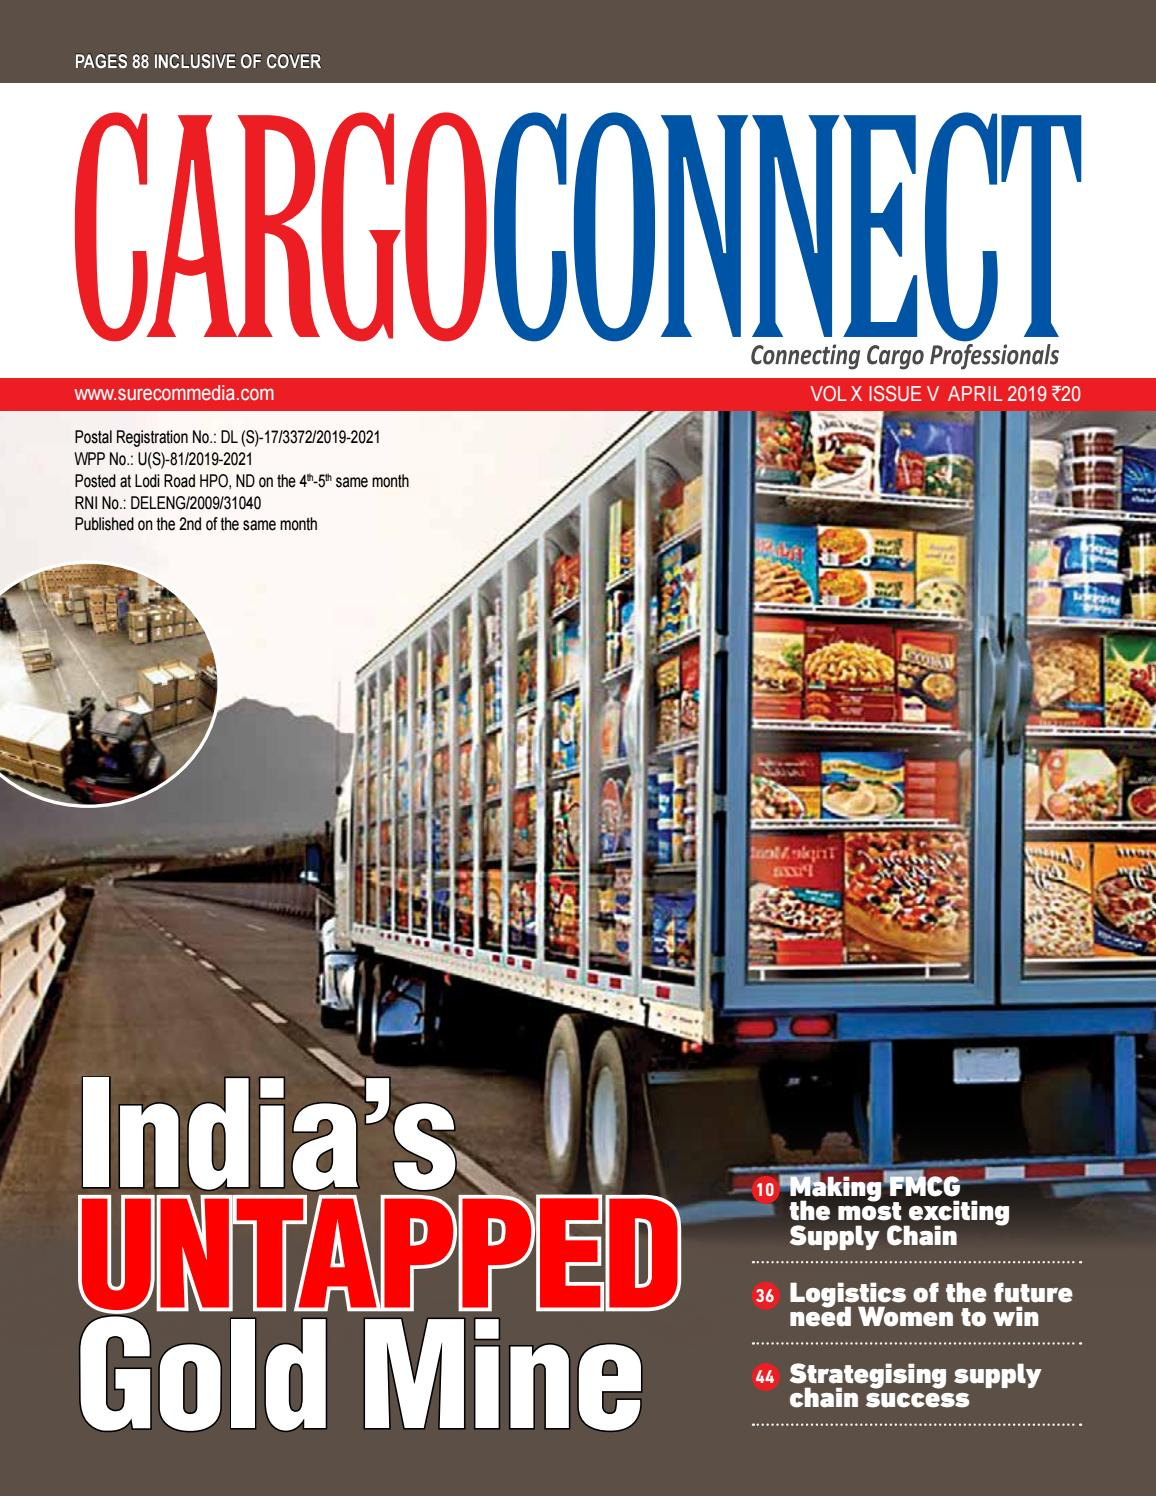 Cargo Connect April 2019 by upamanyu surecommedia - issuu